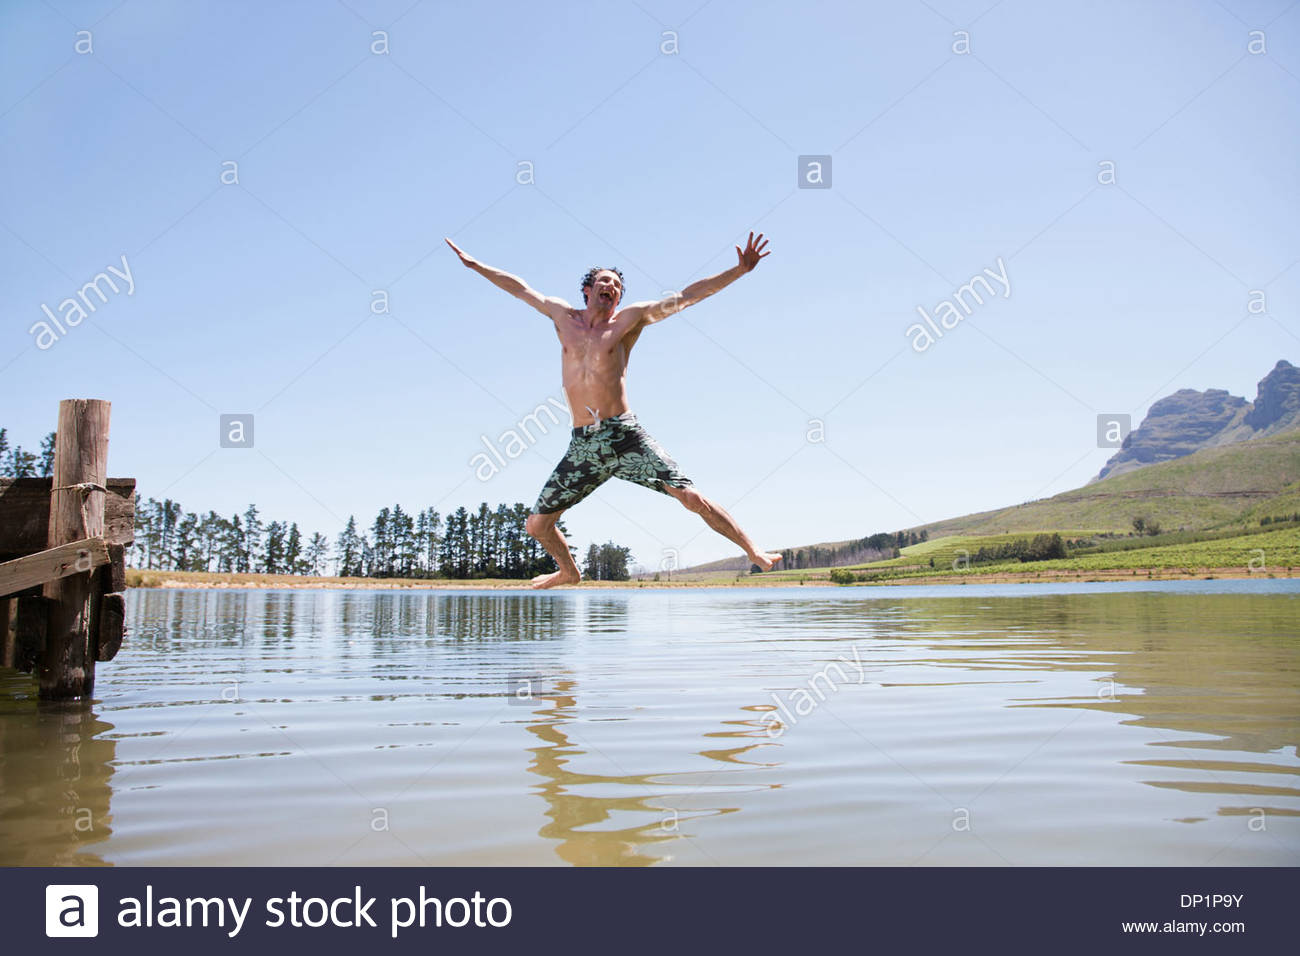 Man Jumping off dock dans le lac Photo Stock